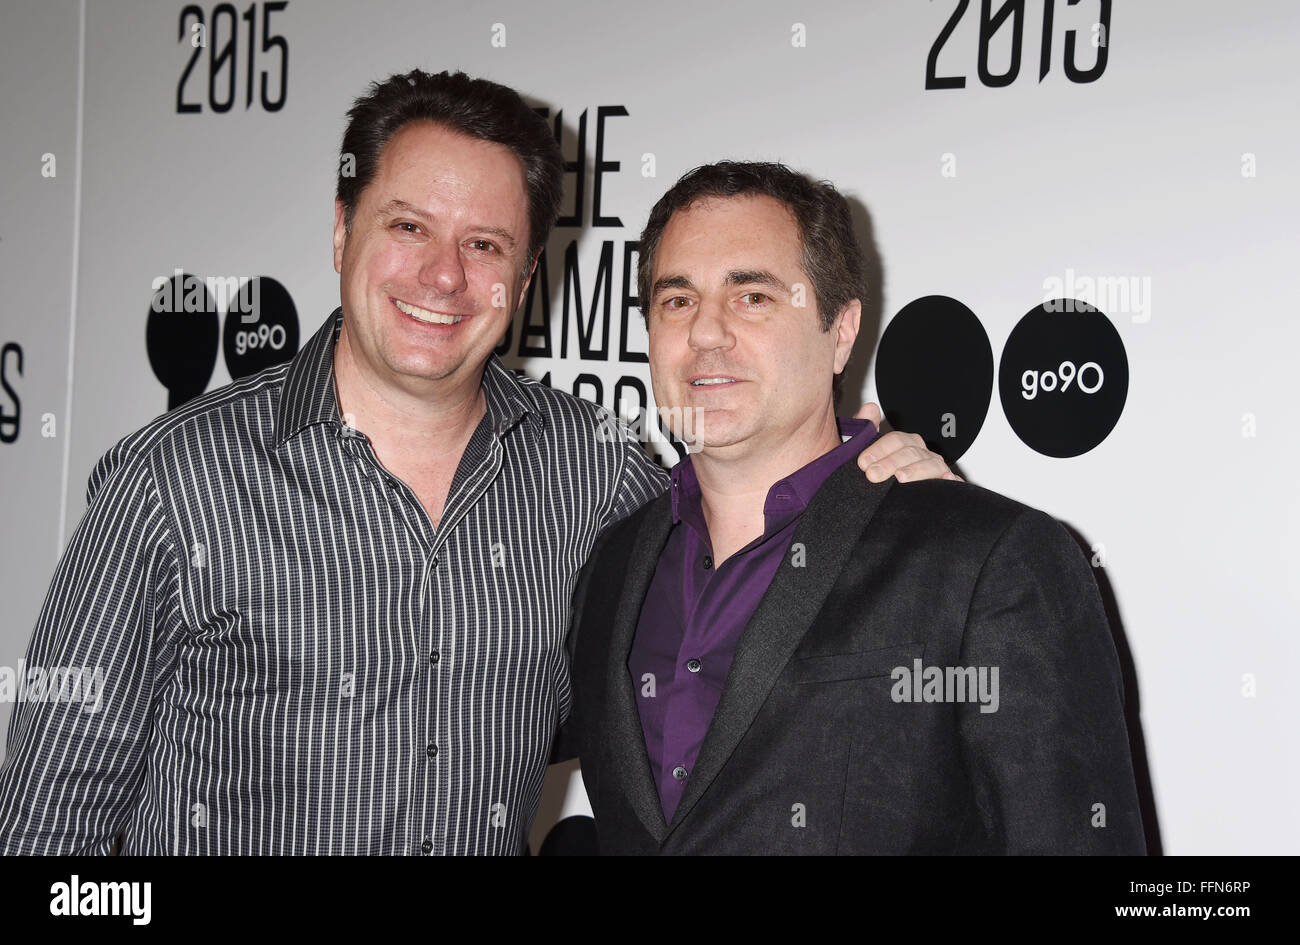 Video game designers and co-founders of Westwood Studios Brett Sperry (L) and Louis Castle arrive at The Game Awards - Stock Image